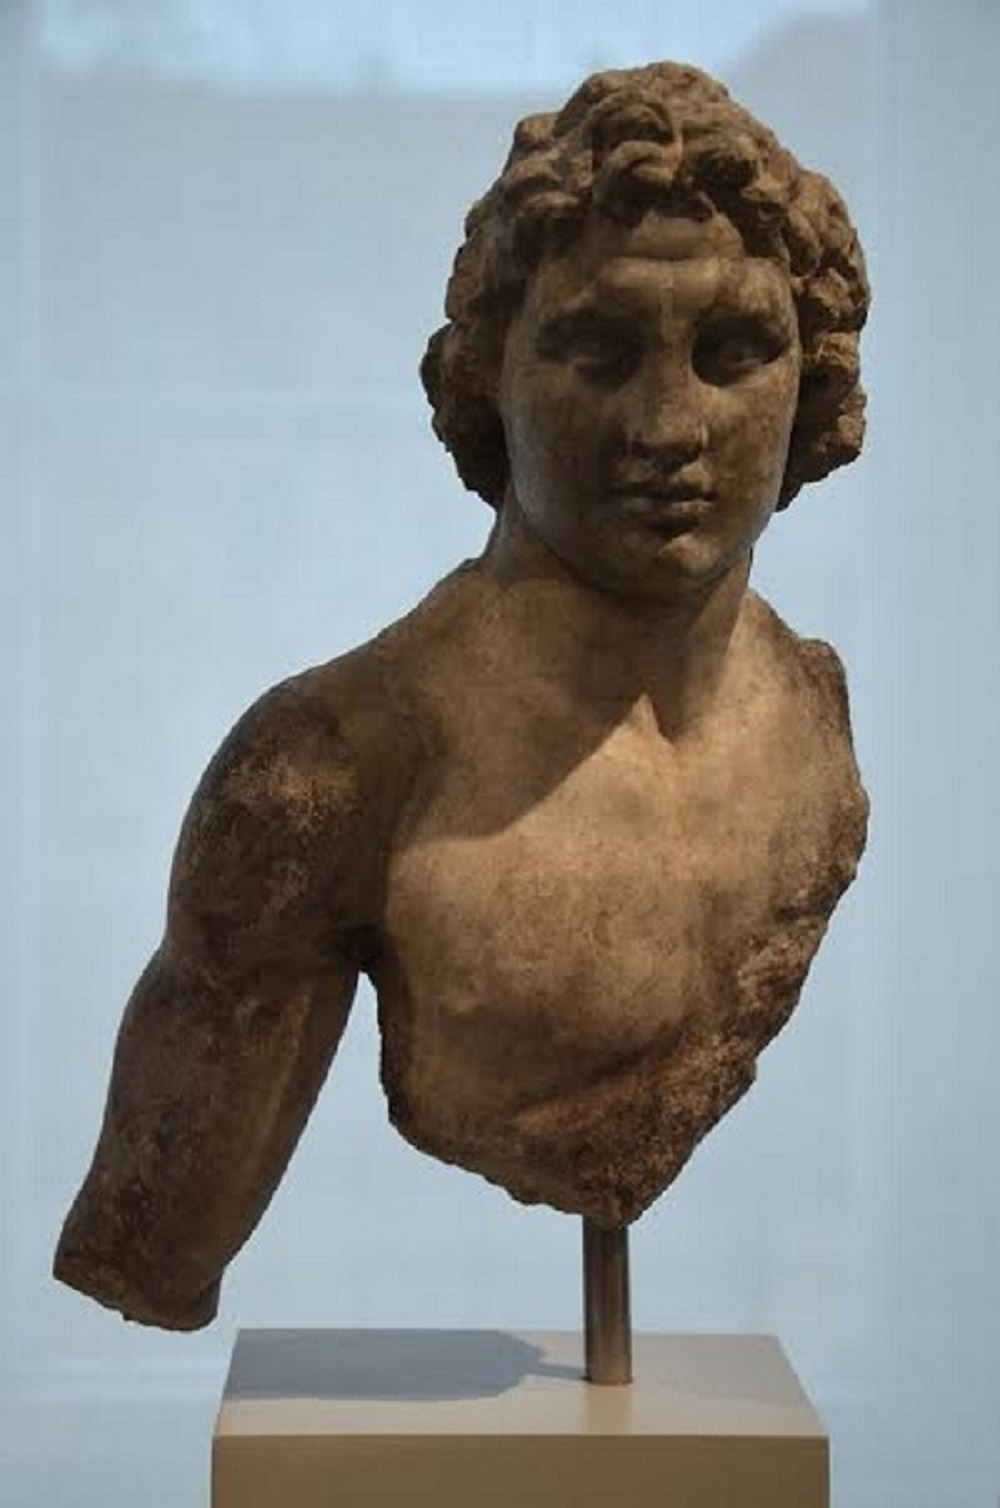 Upper body of a statuette of Alexander the Great, from Priene (Turkey), 200-150 BC, Altes Museum, Berlin